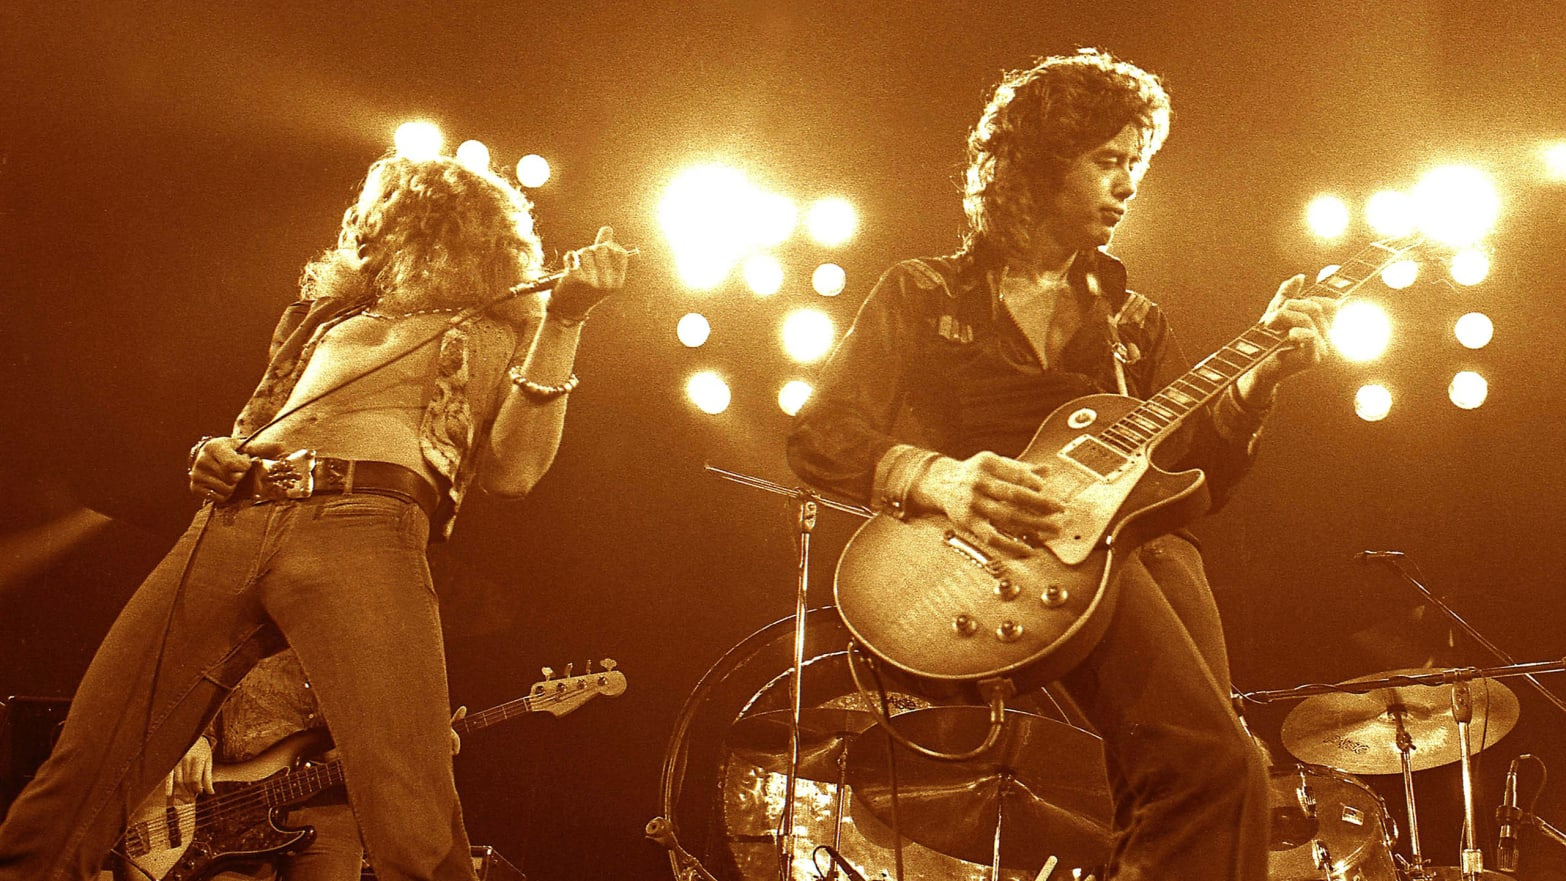 Led Zeppelin's Controversial Legacy: Thievery, Underage Groupies and the 'Mud-Shark Incident'